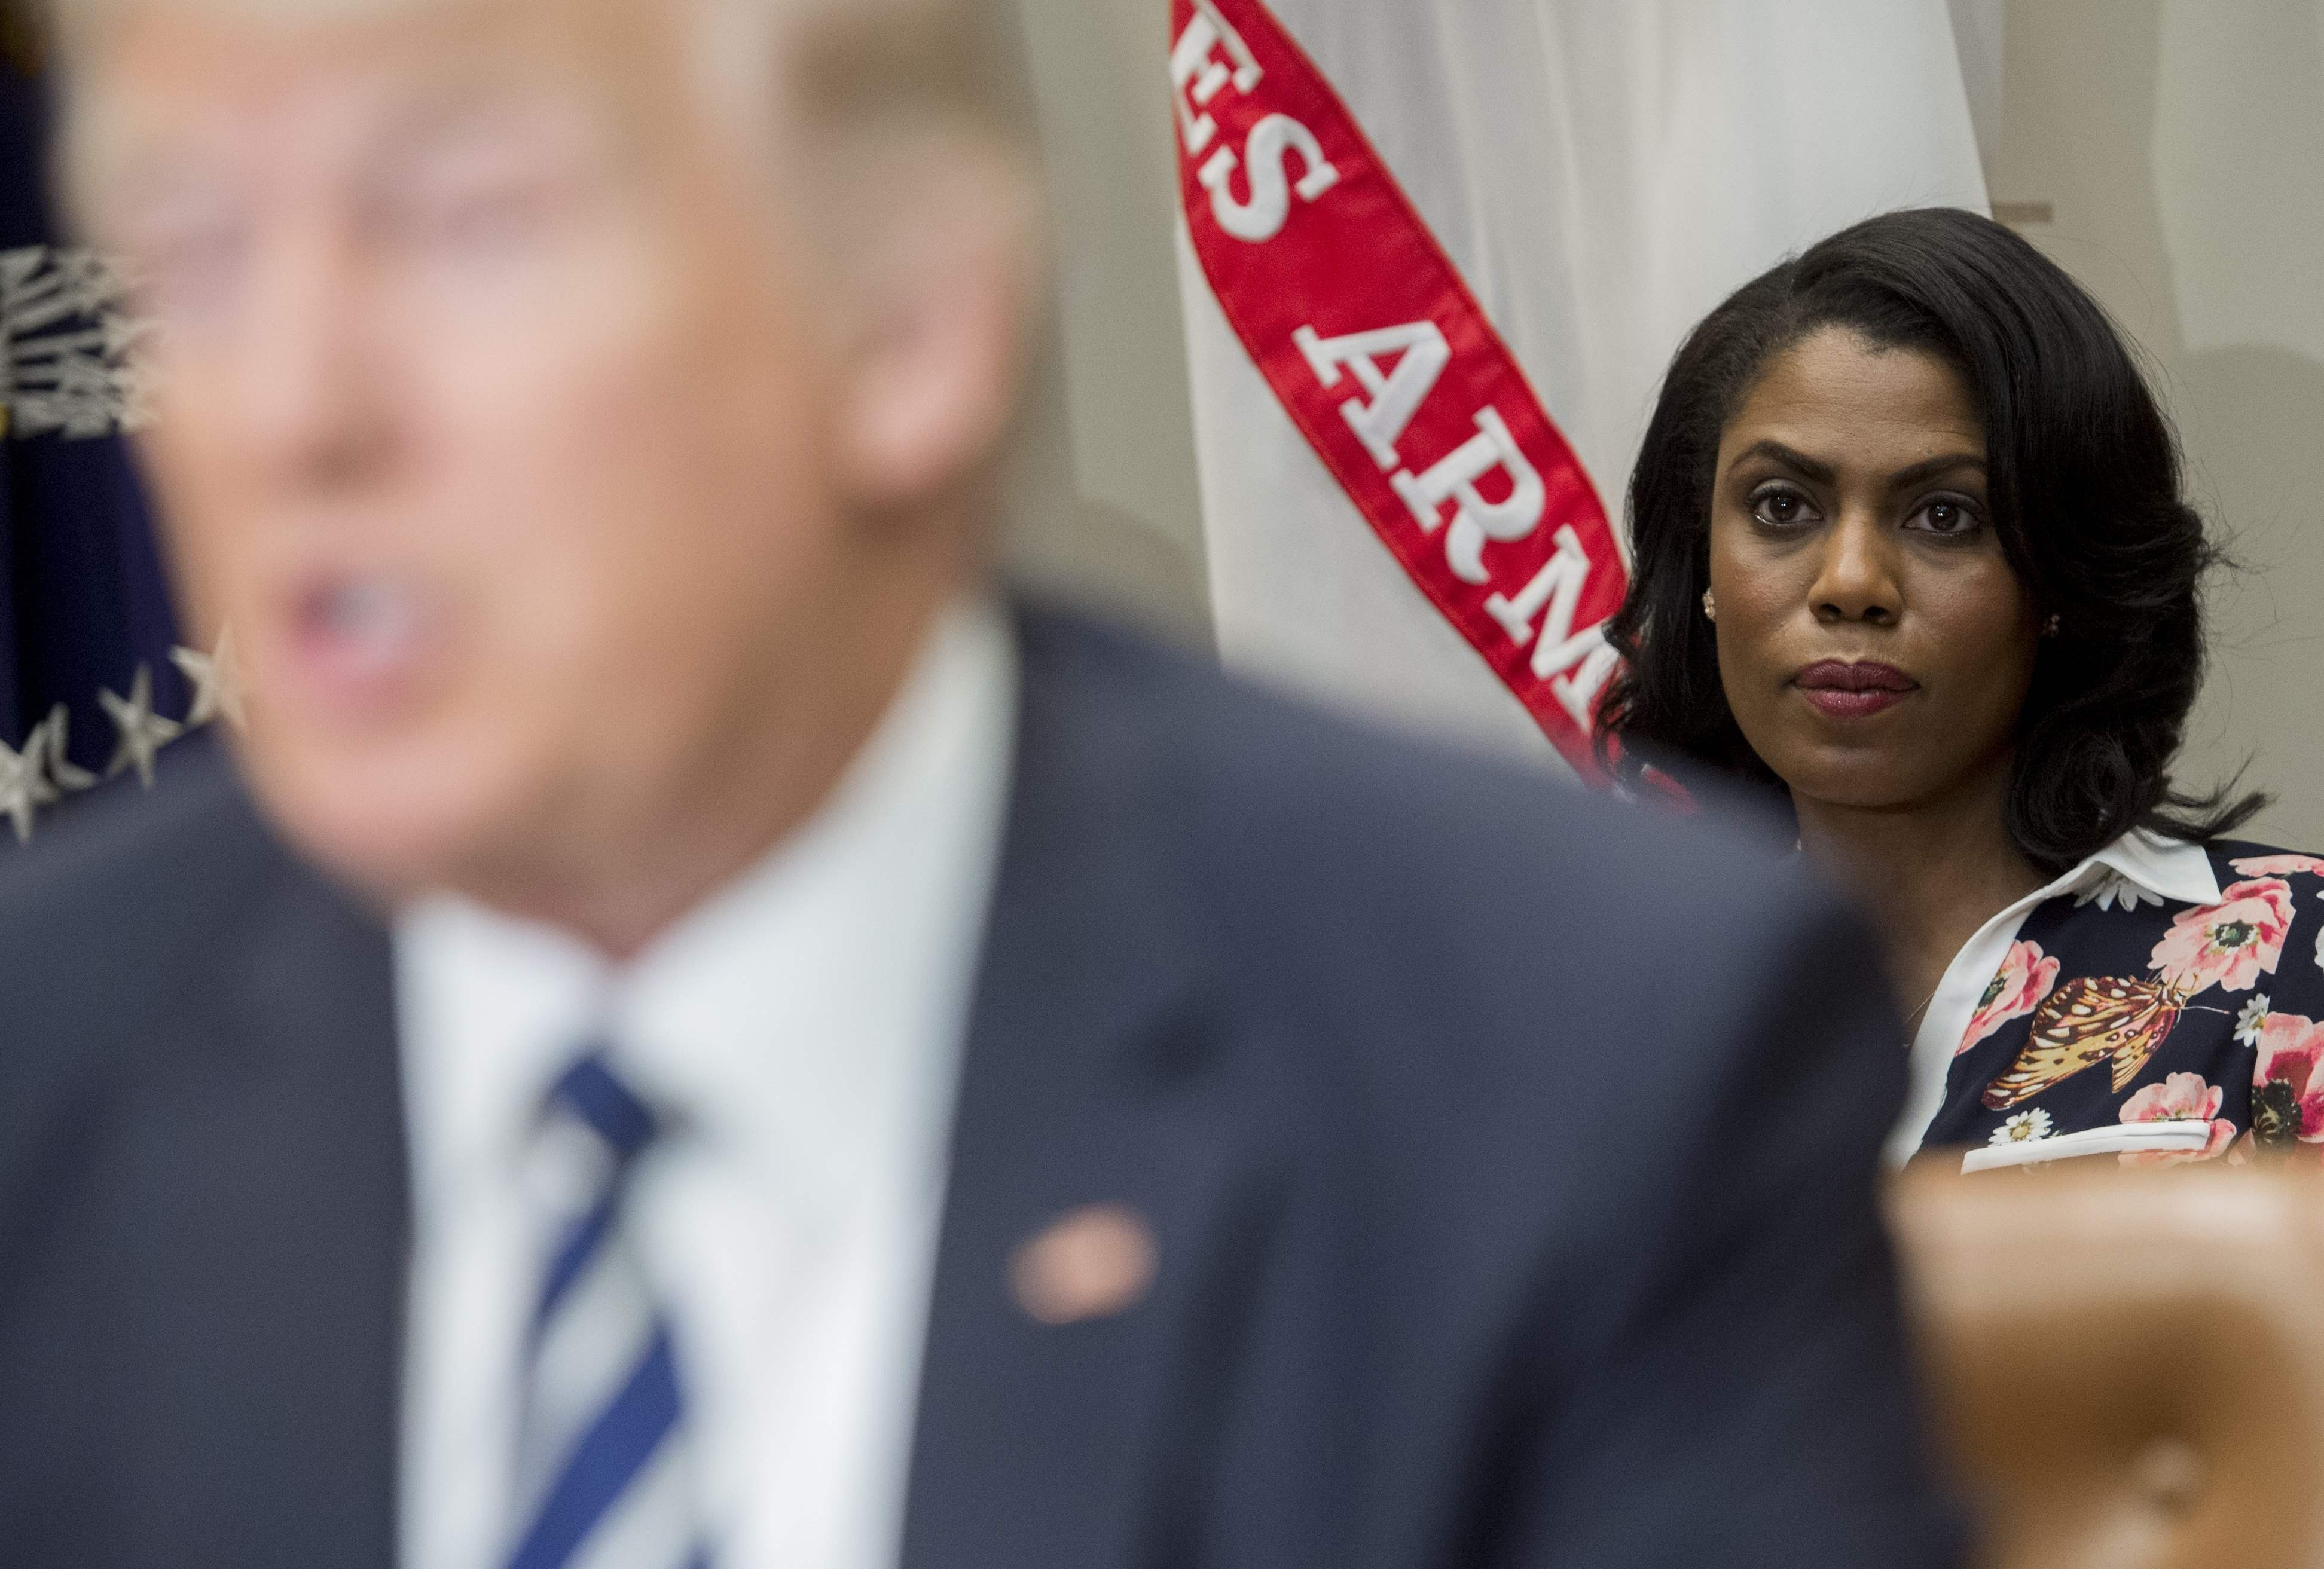 'She's a low life': President Trump attacks Omarosa ahead of scathing tell-all book release